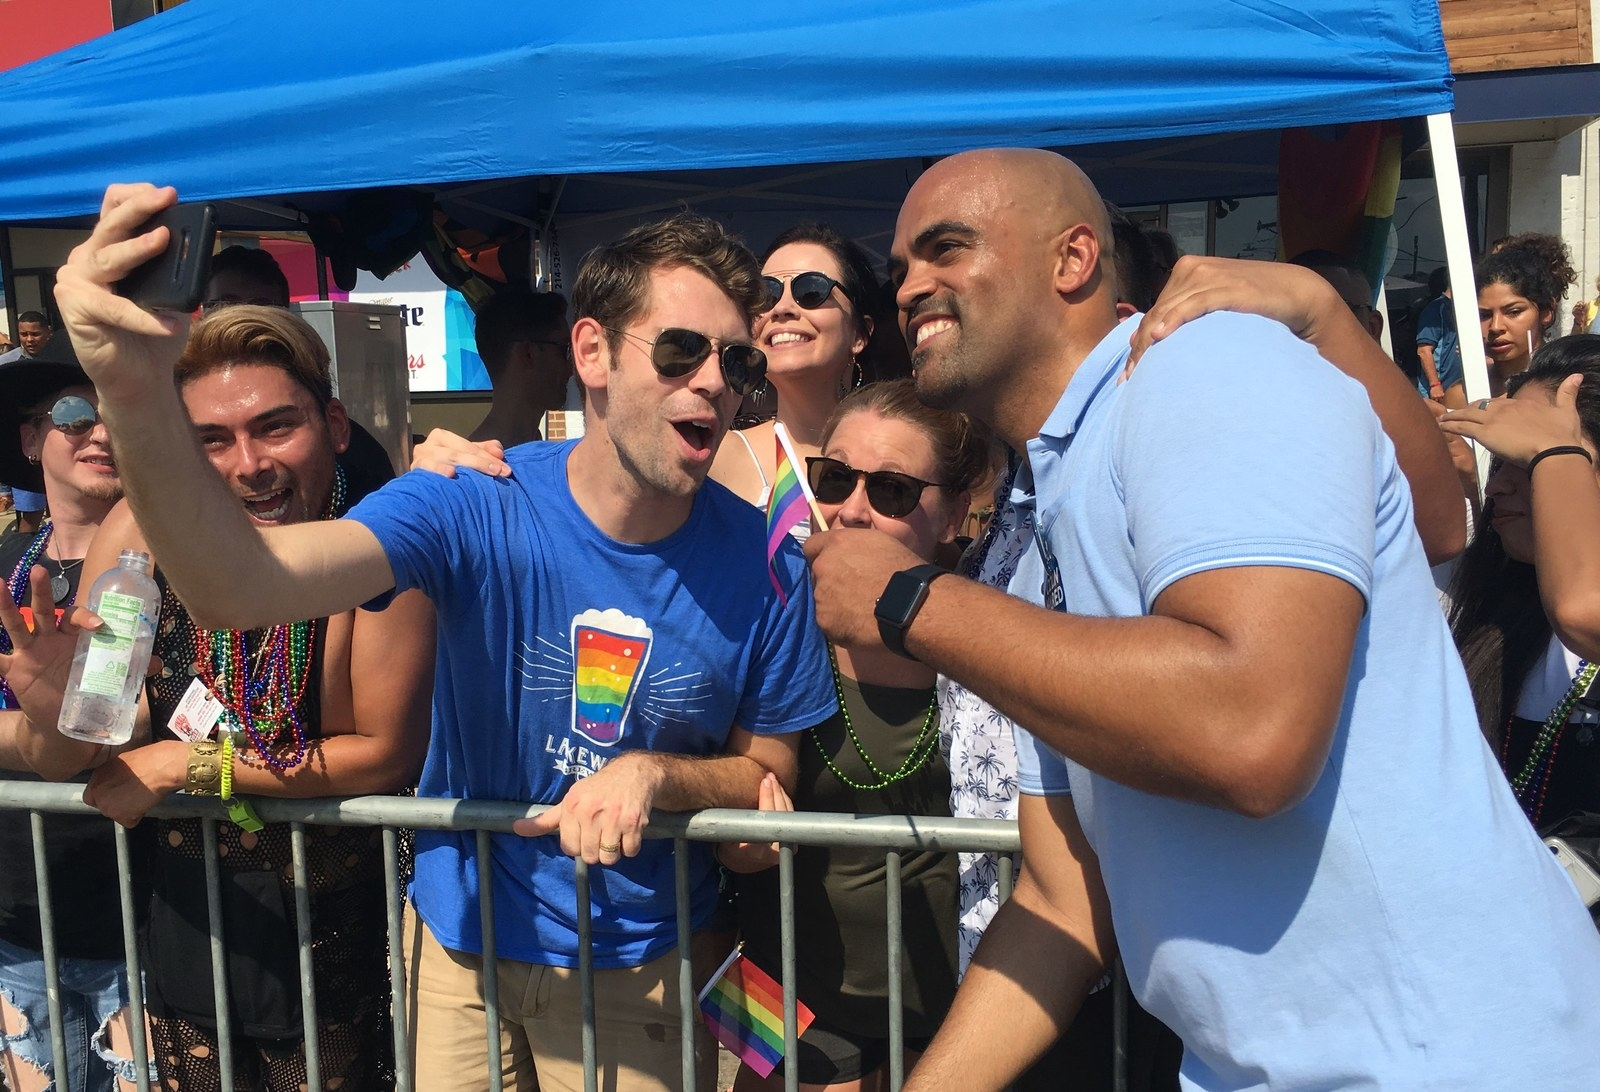 Colin Allred (right) with supporters as he marches in the Dallas Pride Parade on Sept. 16.